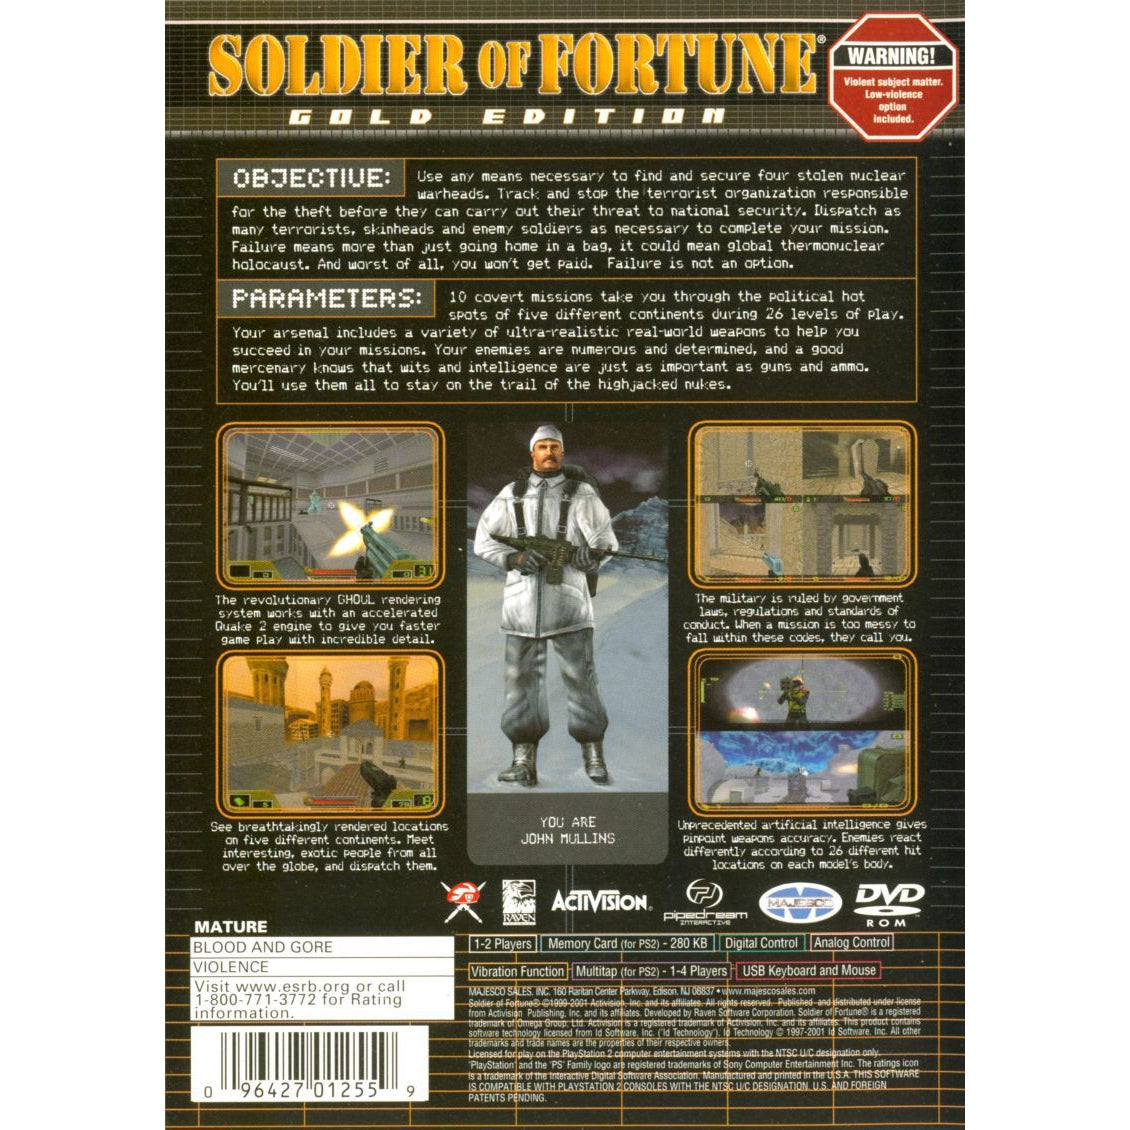 Soldier of Fortune: Gold Edition - PlayStation 2 (PS2) Game Complete - YourGamingShop.com - Buy, Sell, Trade Video Games Online. 120 Day Warranty. Satisfaction Guaranteed.